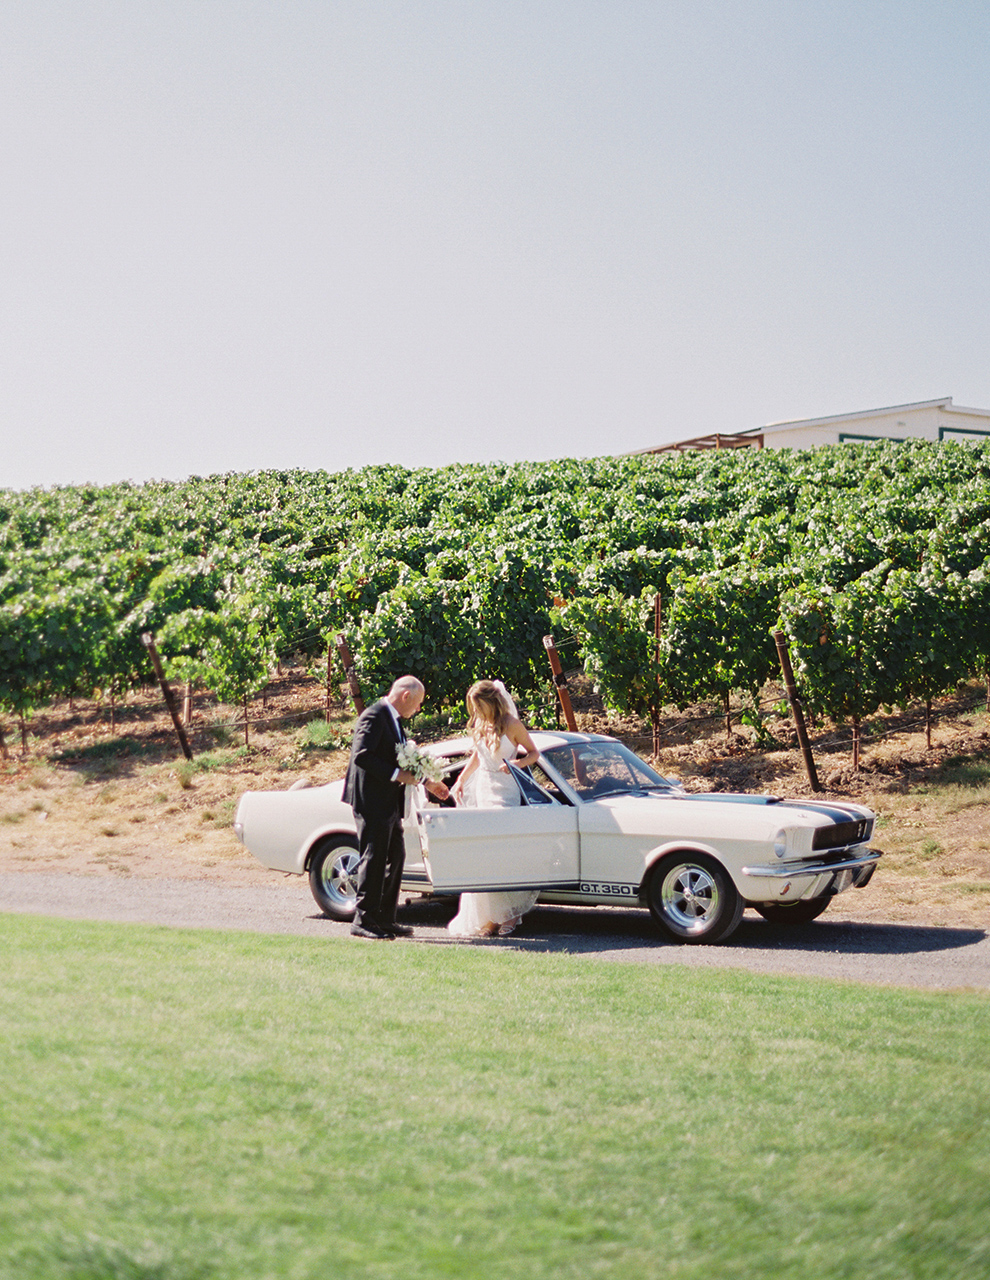 Shelby GT350 '65 bride and father arrival